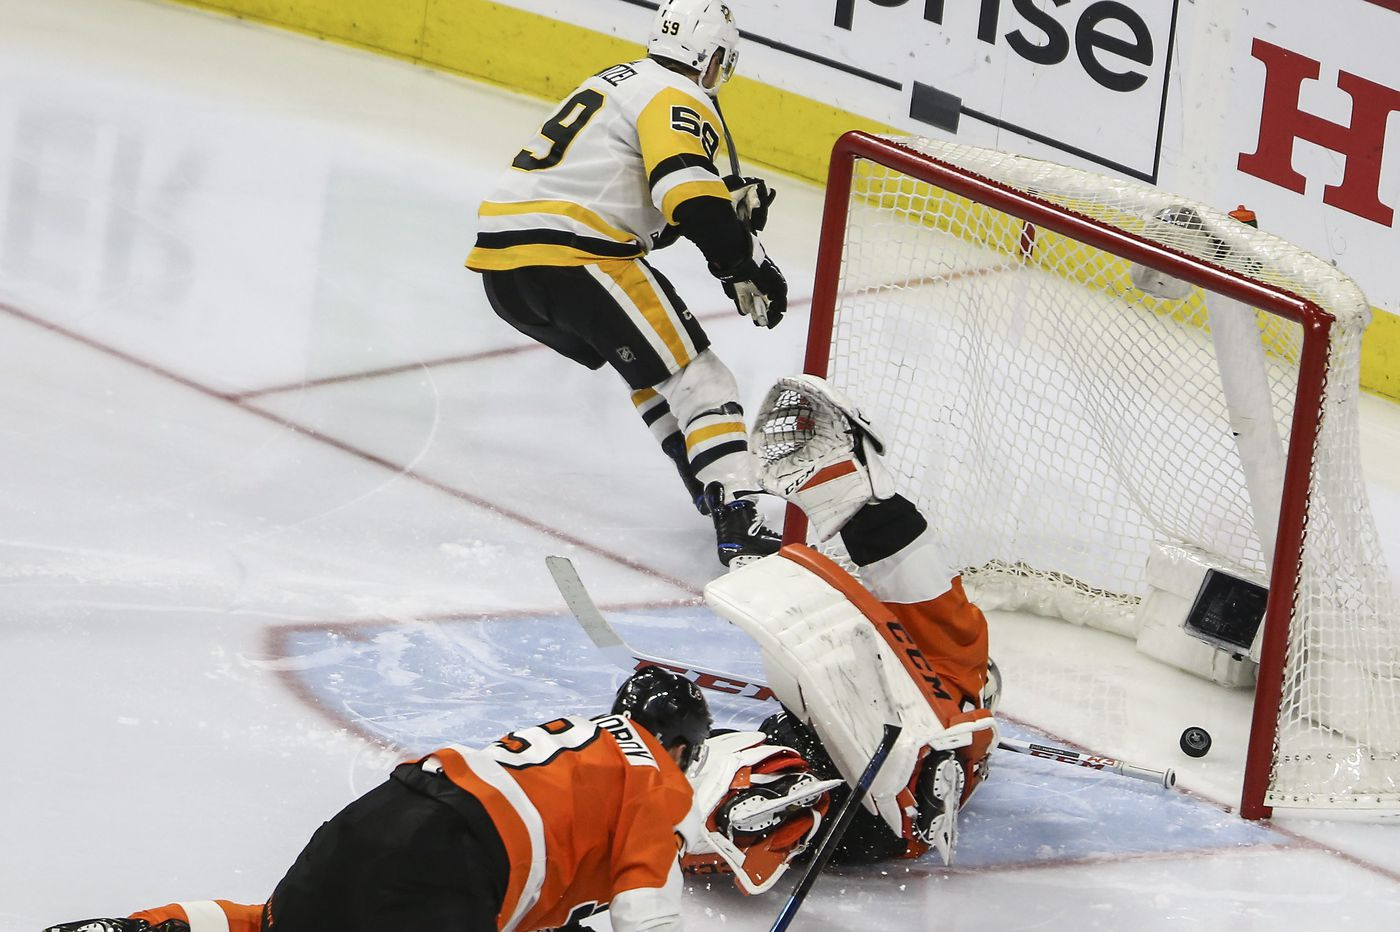 Sportsbetting: Las Vegas not optimistic Flyers will end Stanley Cup drought